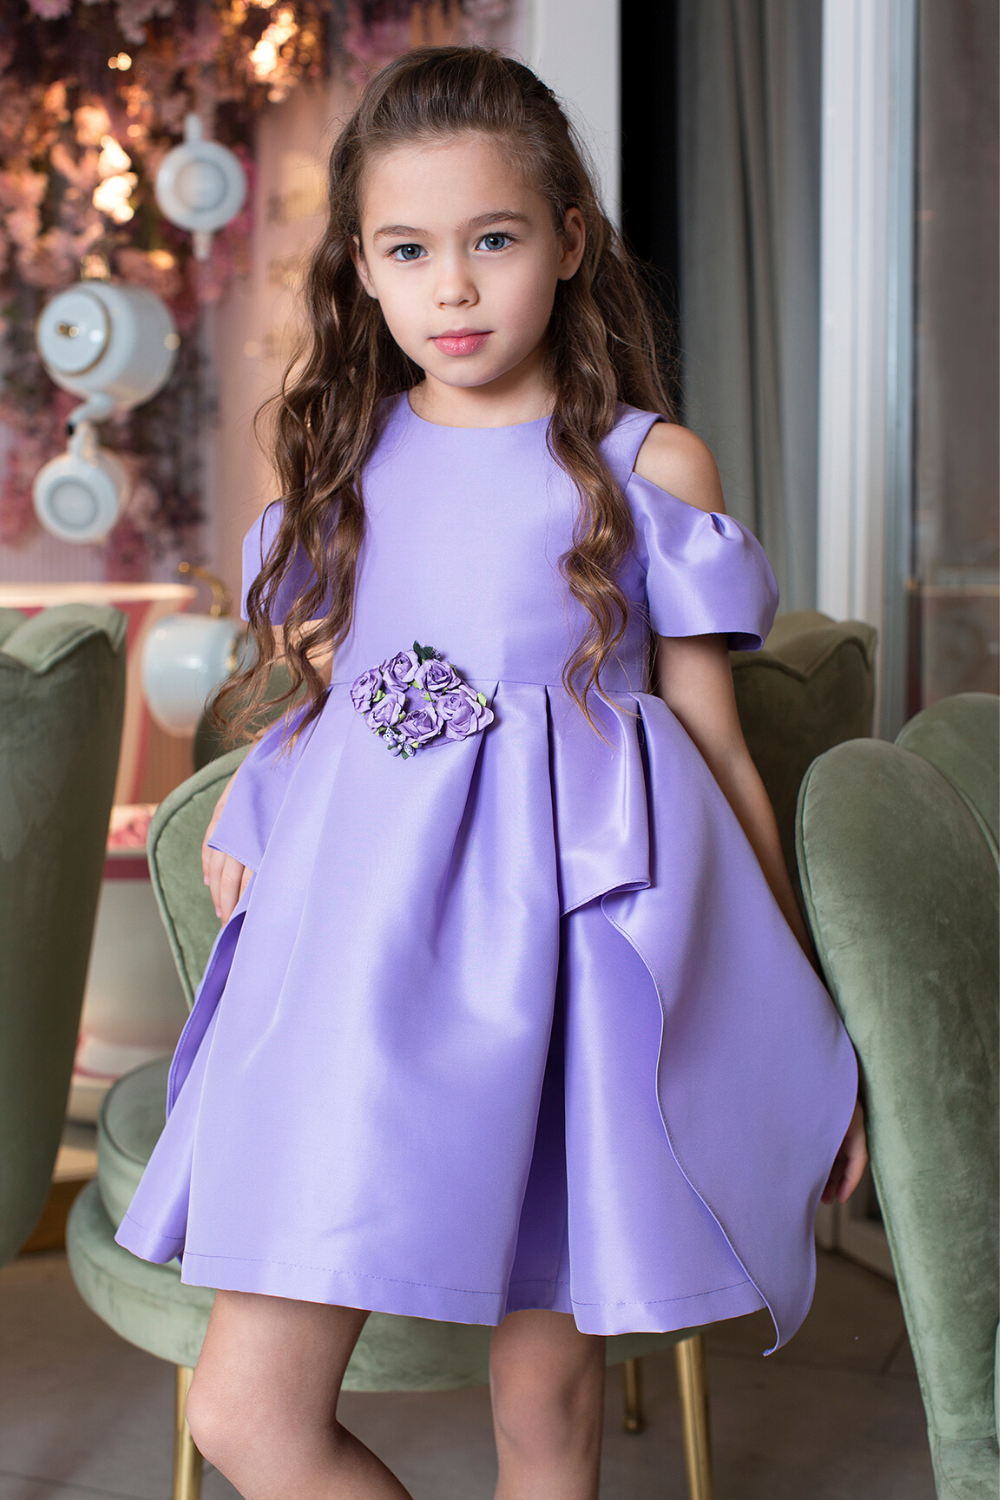 Special Occasion Dresses For Girls Girls Formal Dresses Kids Girls Special Occasion Dresses Purple Toddler Dress [ 1500 x 1000 Pixel ]